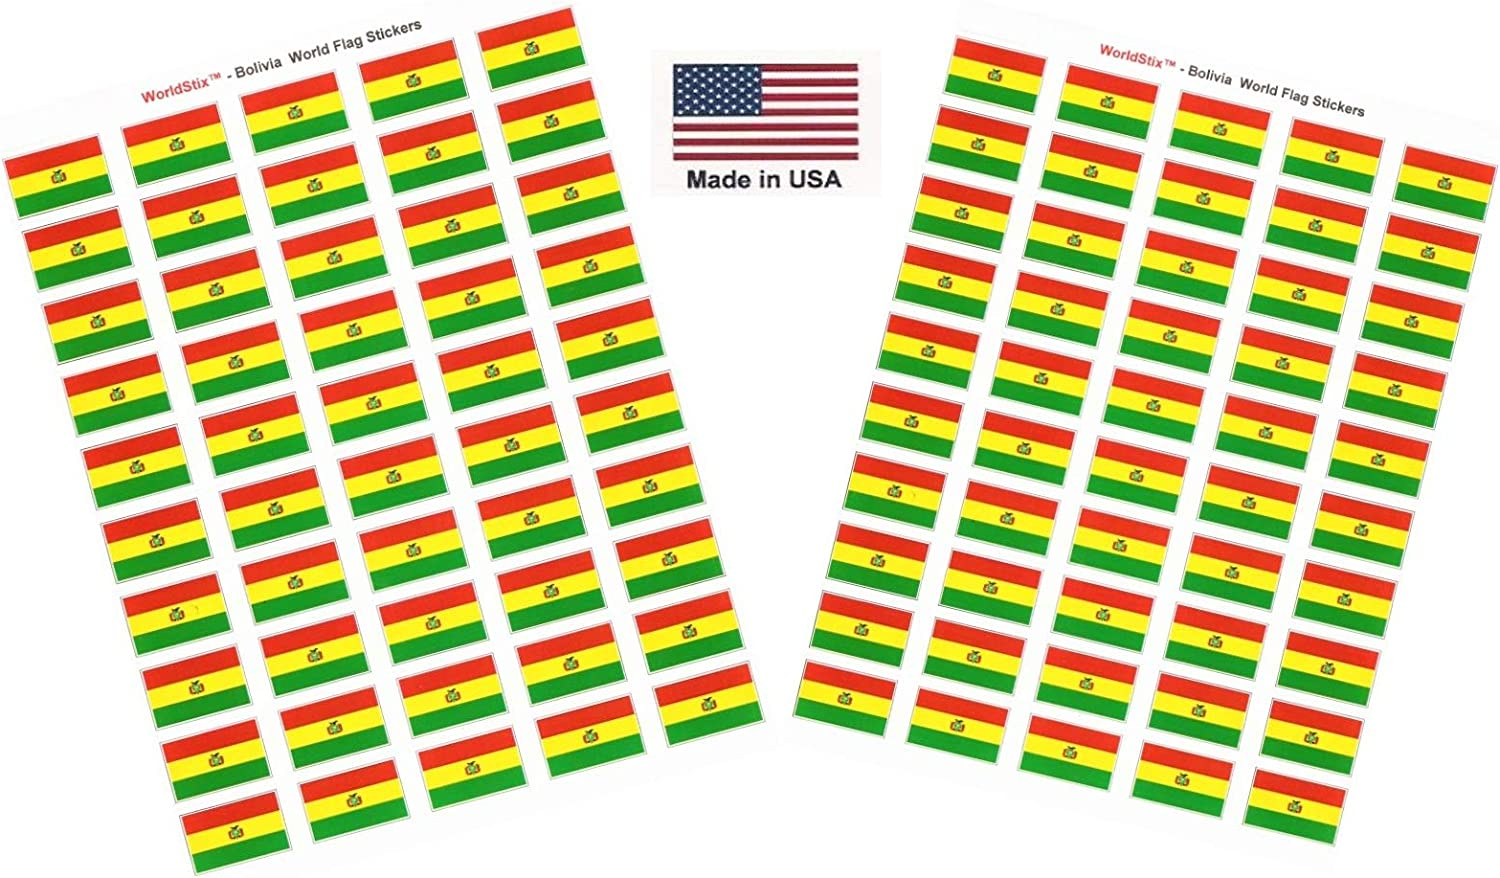 Made in USA New Zealand 100 International Sticker Decal Flags Total Two Sheets of 50 100 Country Flag 1.5 x 1 Self Adhesive World Flag Scrapbook Stickers